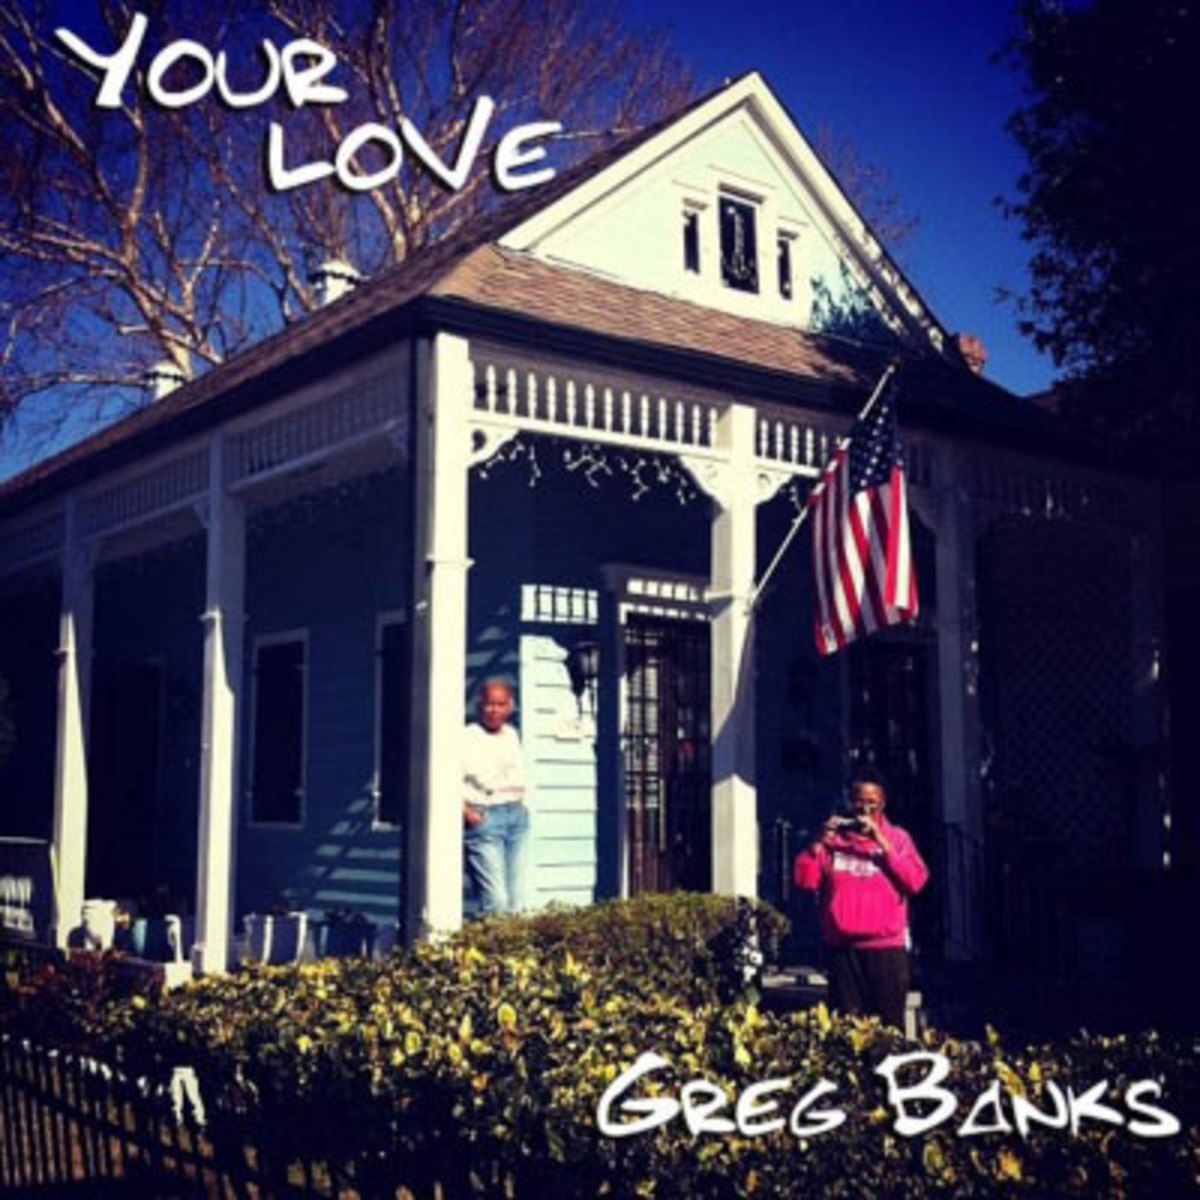 greg-banks-your-love.jpg